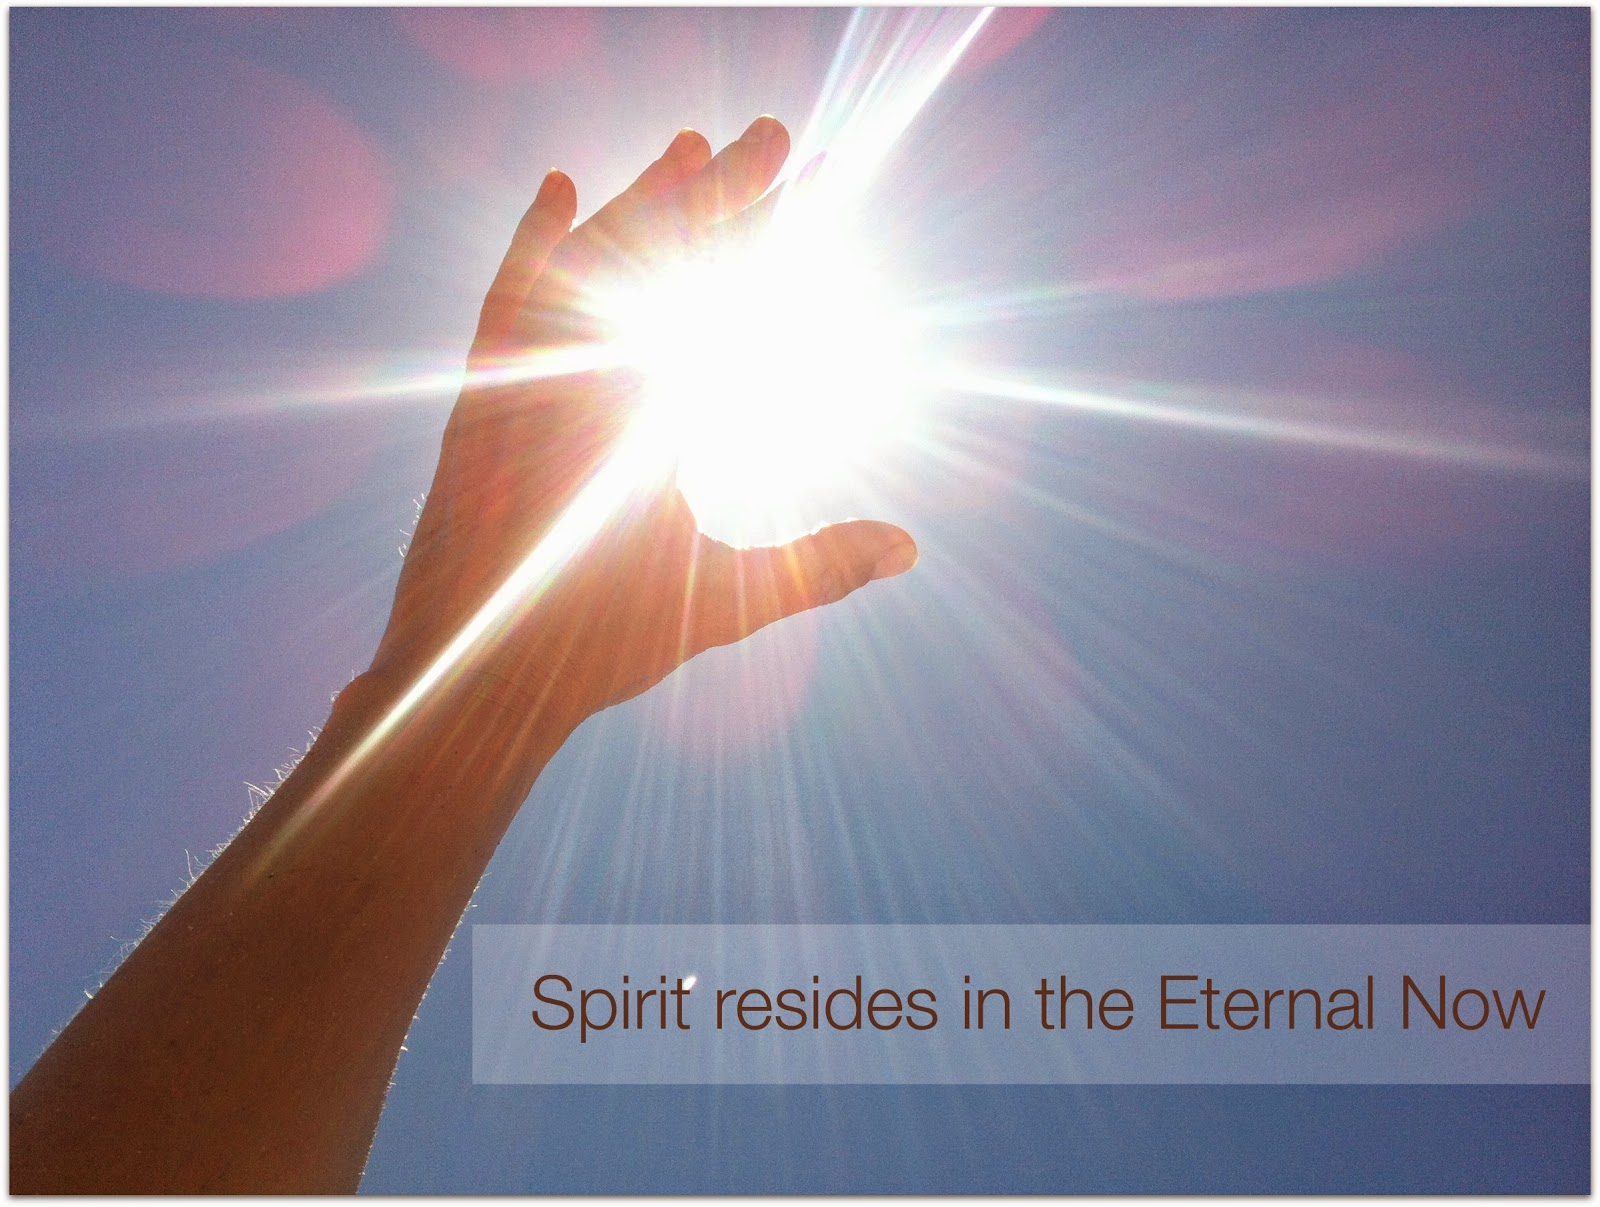 Spirit resides in the Eternal Now